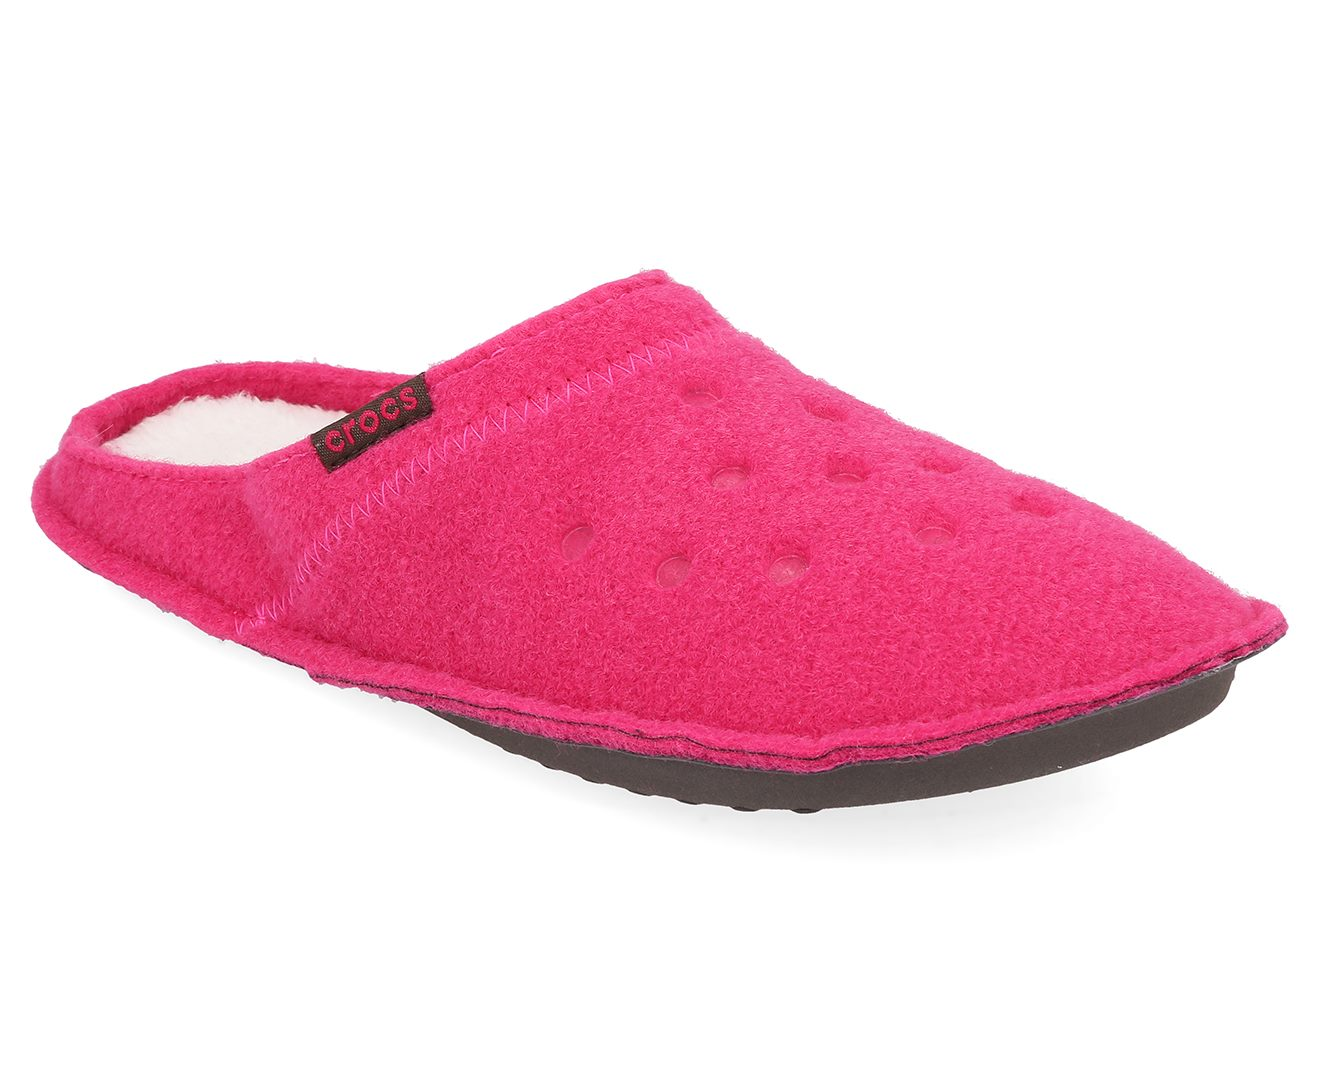 aed451cde2 Crocs Unisex Classic Slipper Candy Pink Oatmeal Slippers   Trade Me